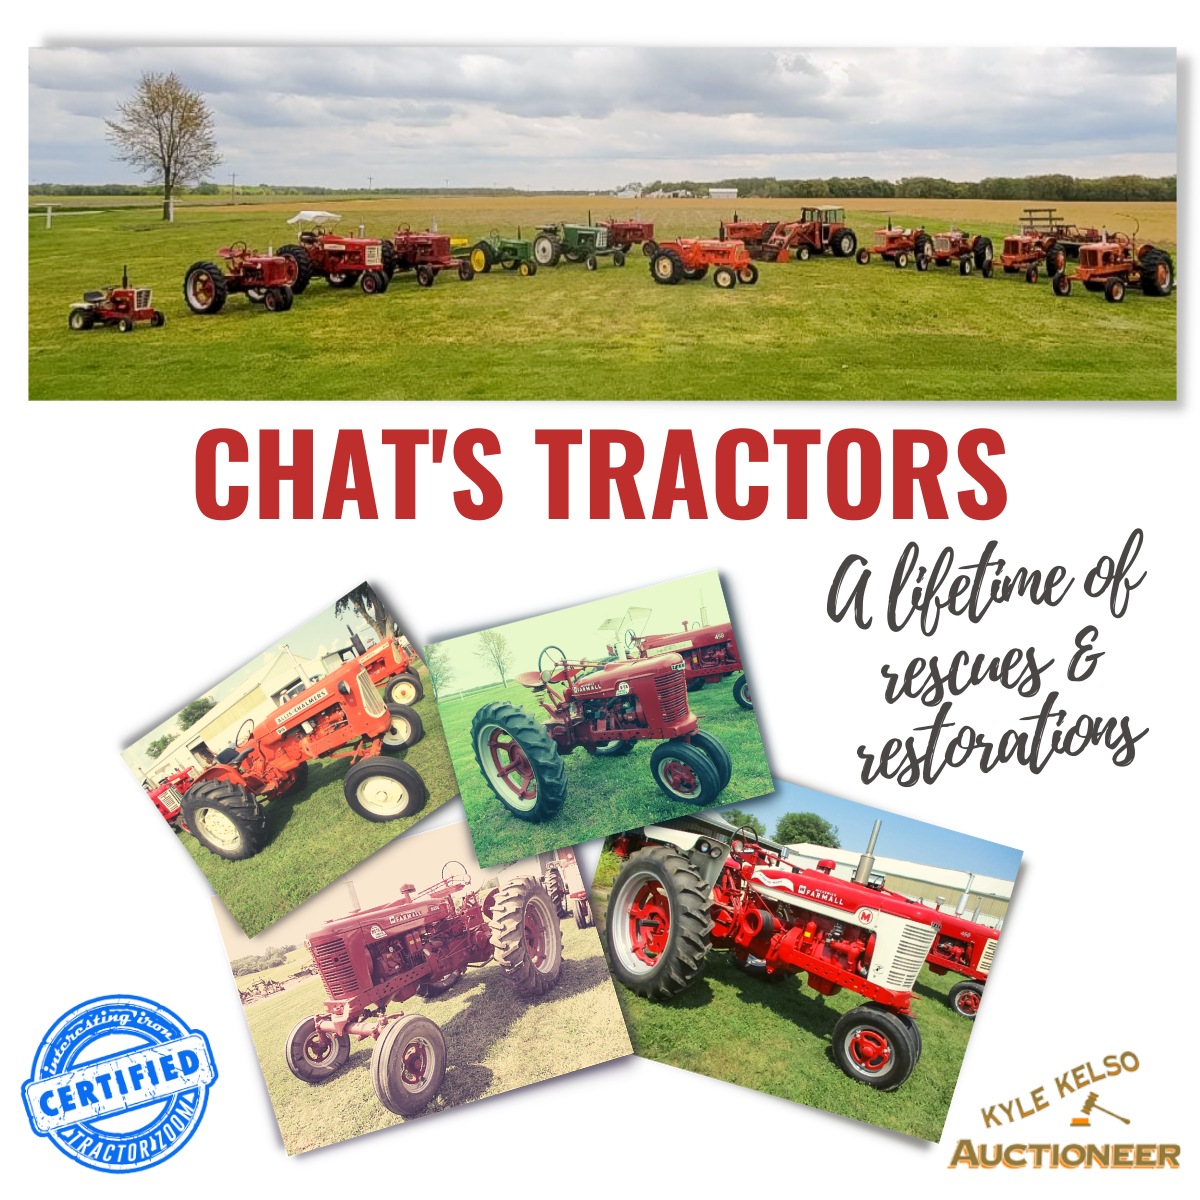 photos of antique farmall, allis chalmers, oliver, and john deere tractors